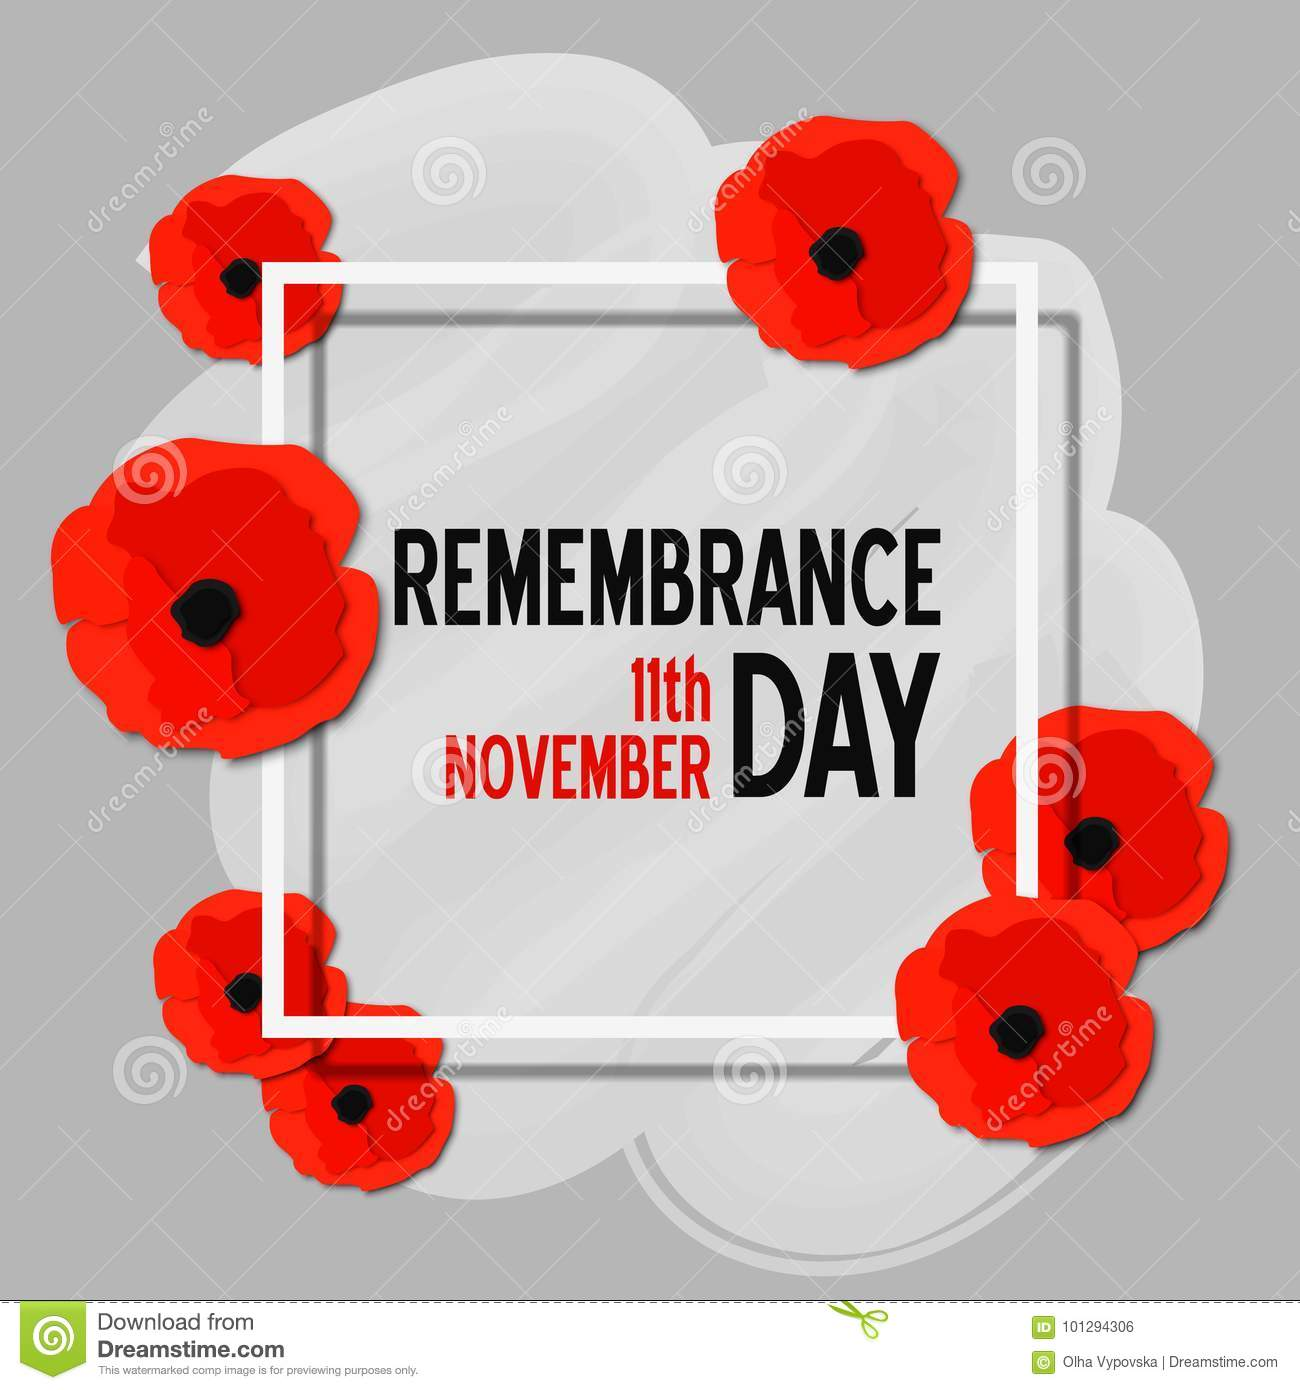 Remembrance Day Paper Cut Poster With Poppy Flowers And White Frame